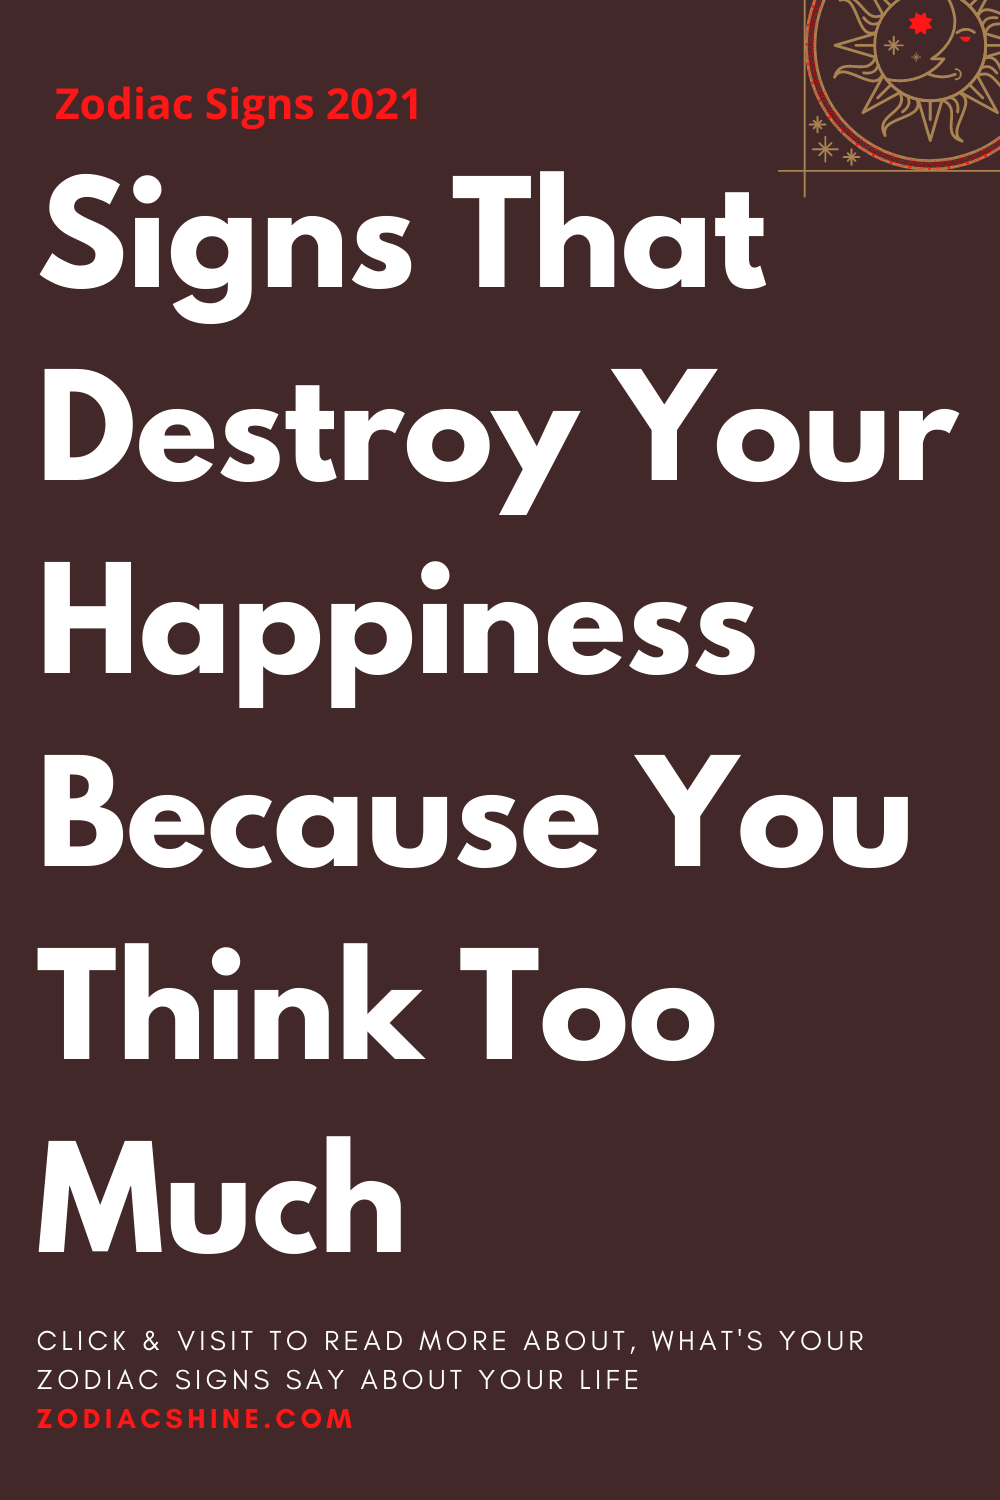 Signs That Destroy Your Happiness Because You Think Too Much